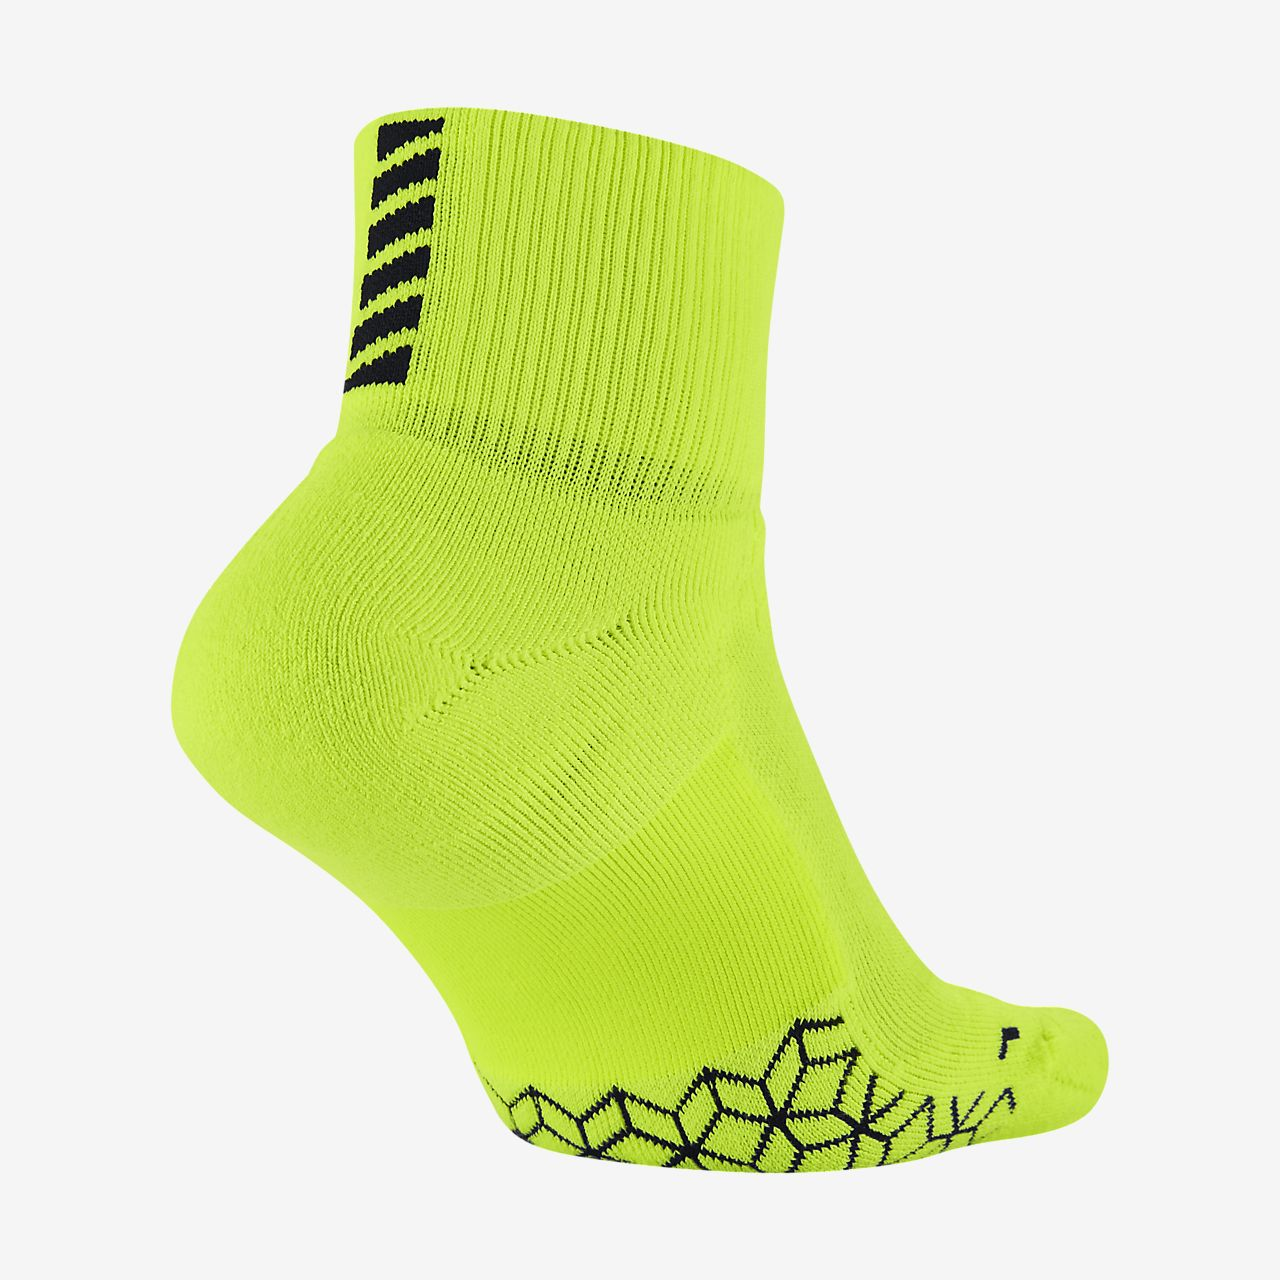 ... Chaussettes de running Nike Elite Cushion Quarter